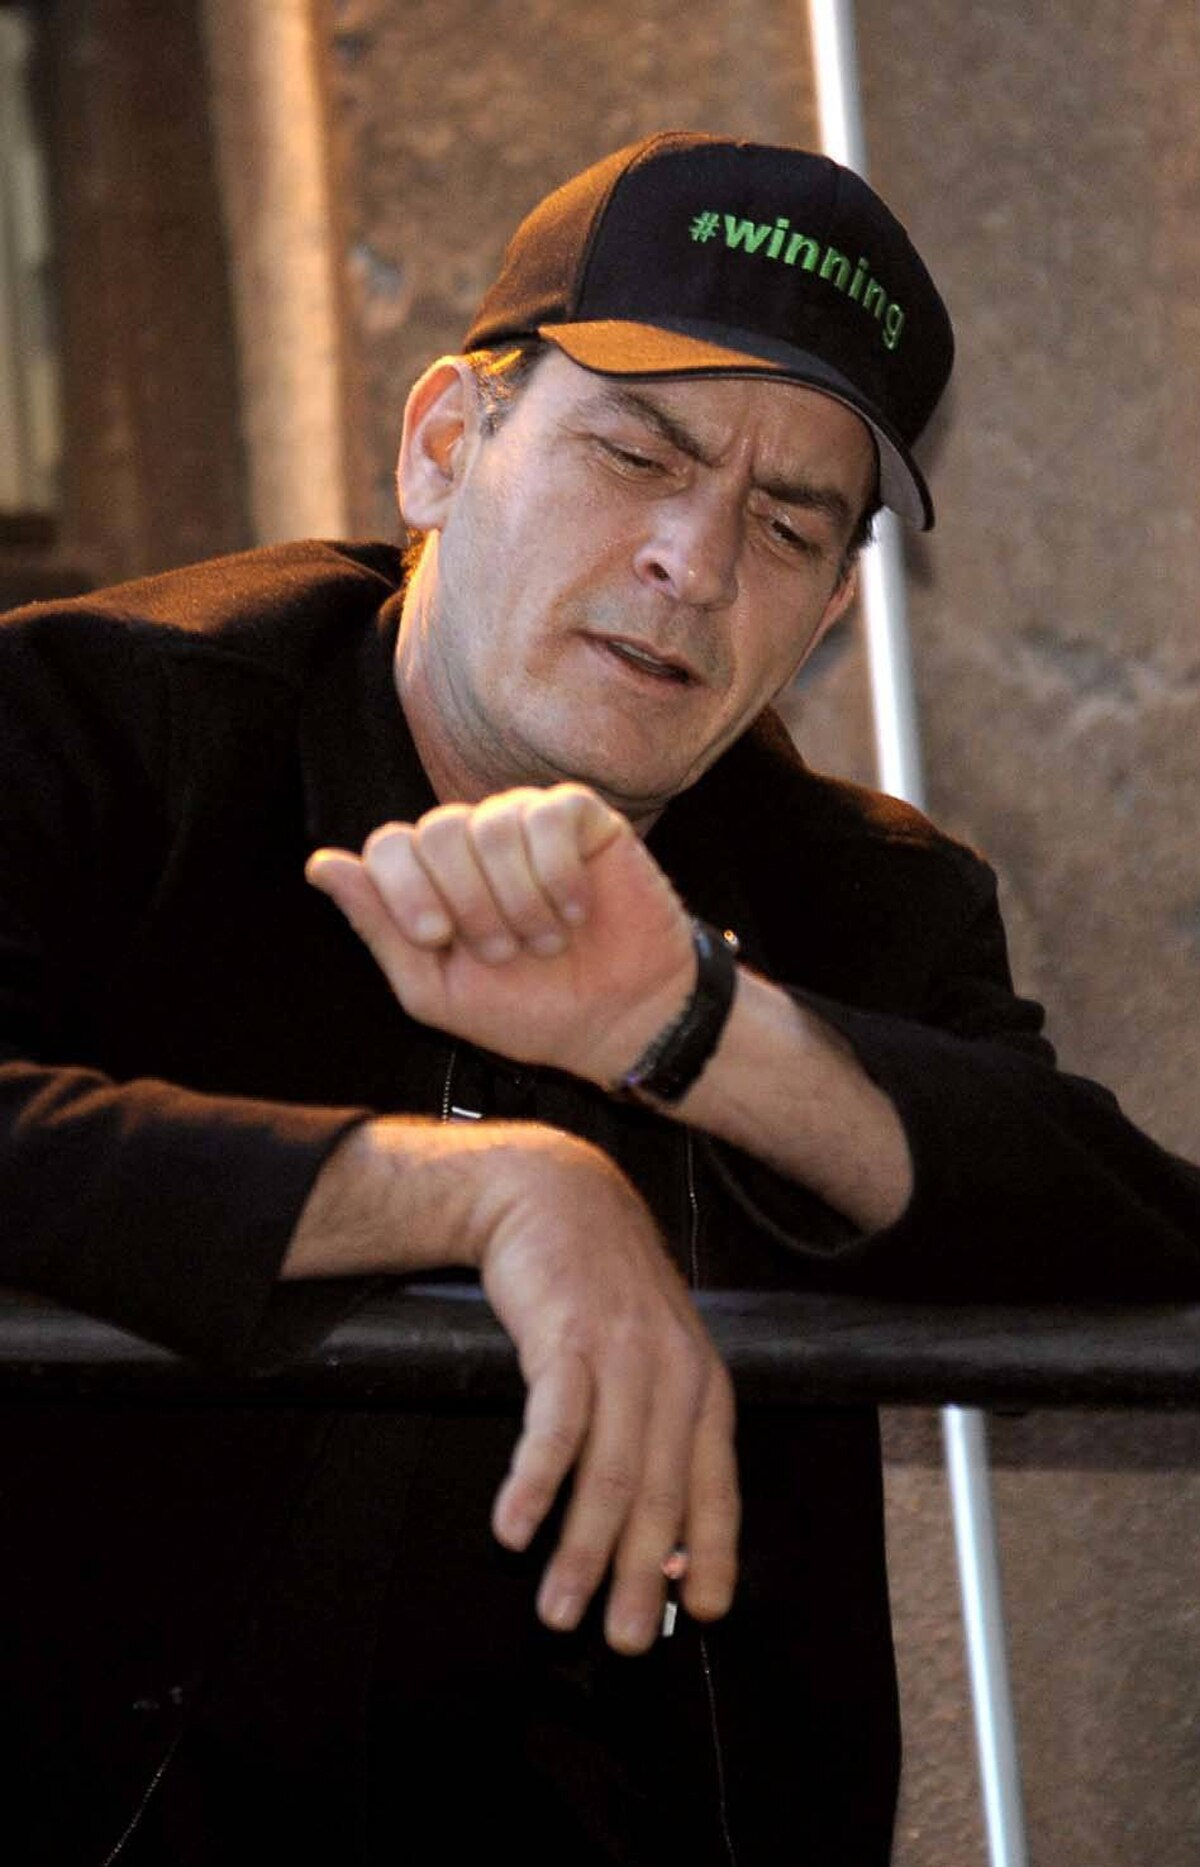 """FUNNY, EVERY TIME I LOOK AT MY WATCH IT SAYS IT'S 15 MINUTES PAST THE HOUR Charlie Sheen went crazy, got fired from the most lucrative sitcom job in America, toured his mental illness across North American for the enjoyment of cruel strangers, and called the whole mess """"winning."""" Prediction: In 2012 he will be hired to do PR for the Toronto Maple Leafs."""